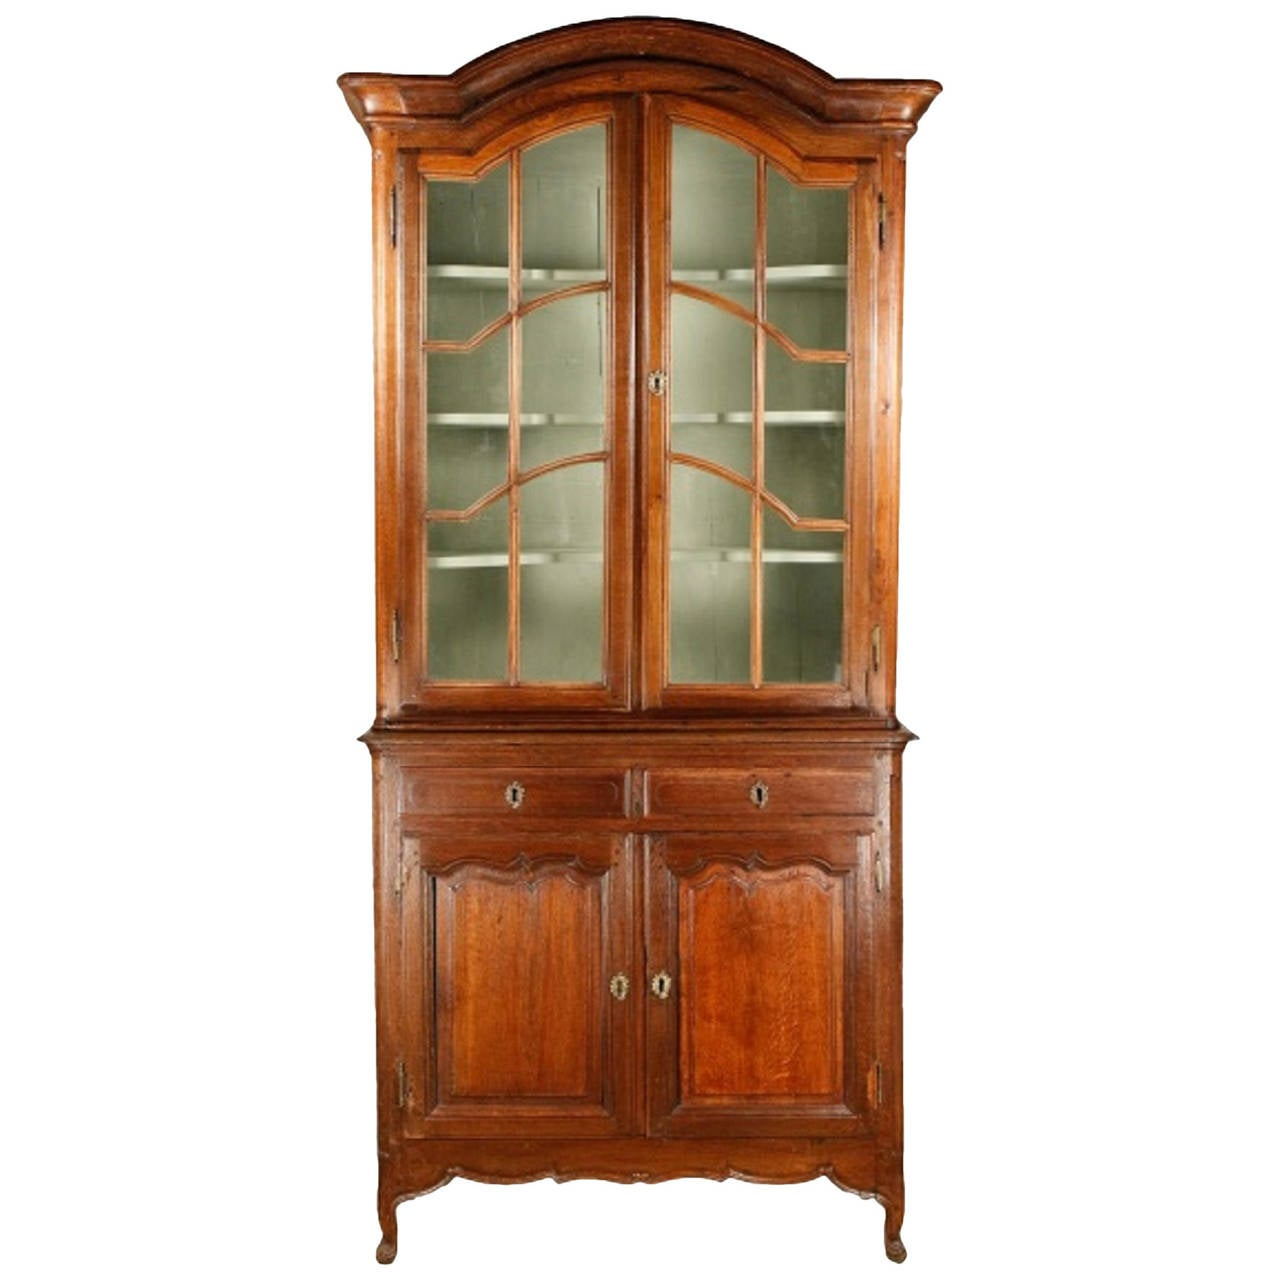 french oak bibliotheque or display cabinet early 19th. Black Bedroom Furniture Sets. Home Design Ideas